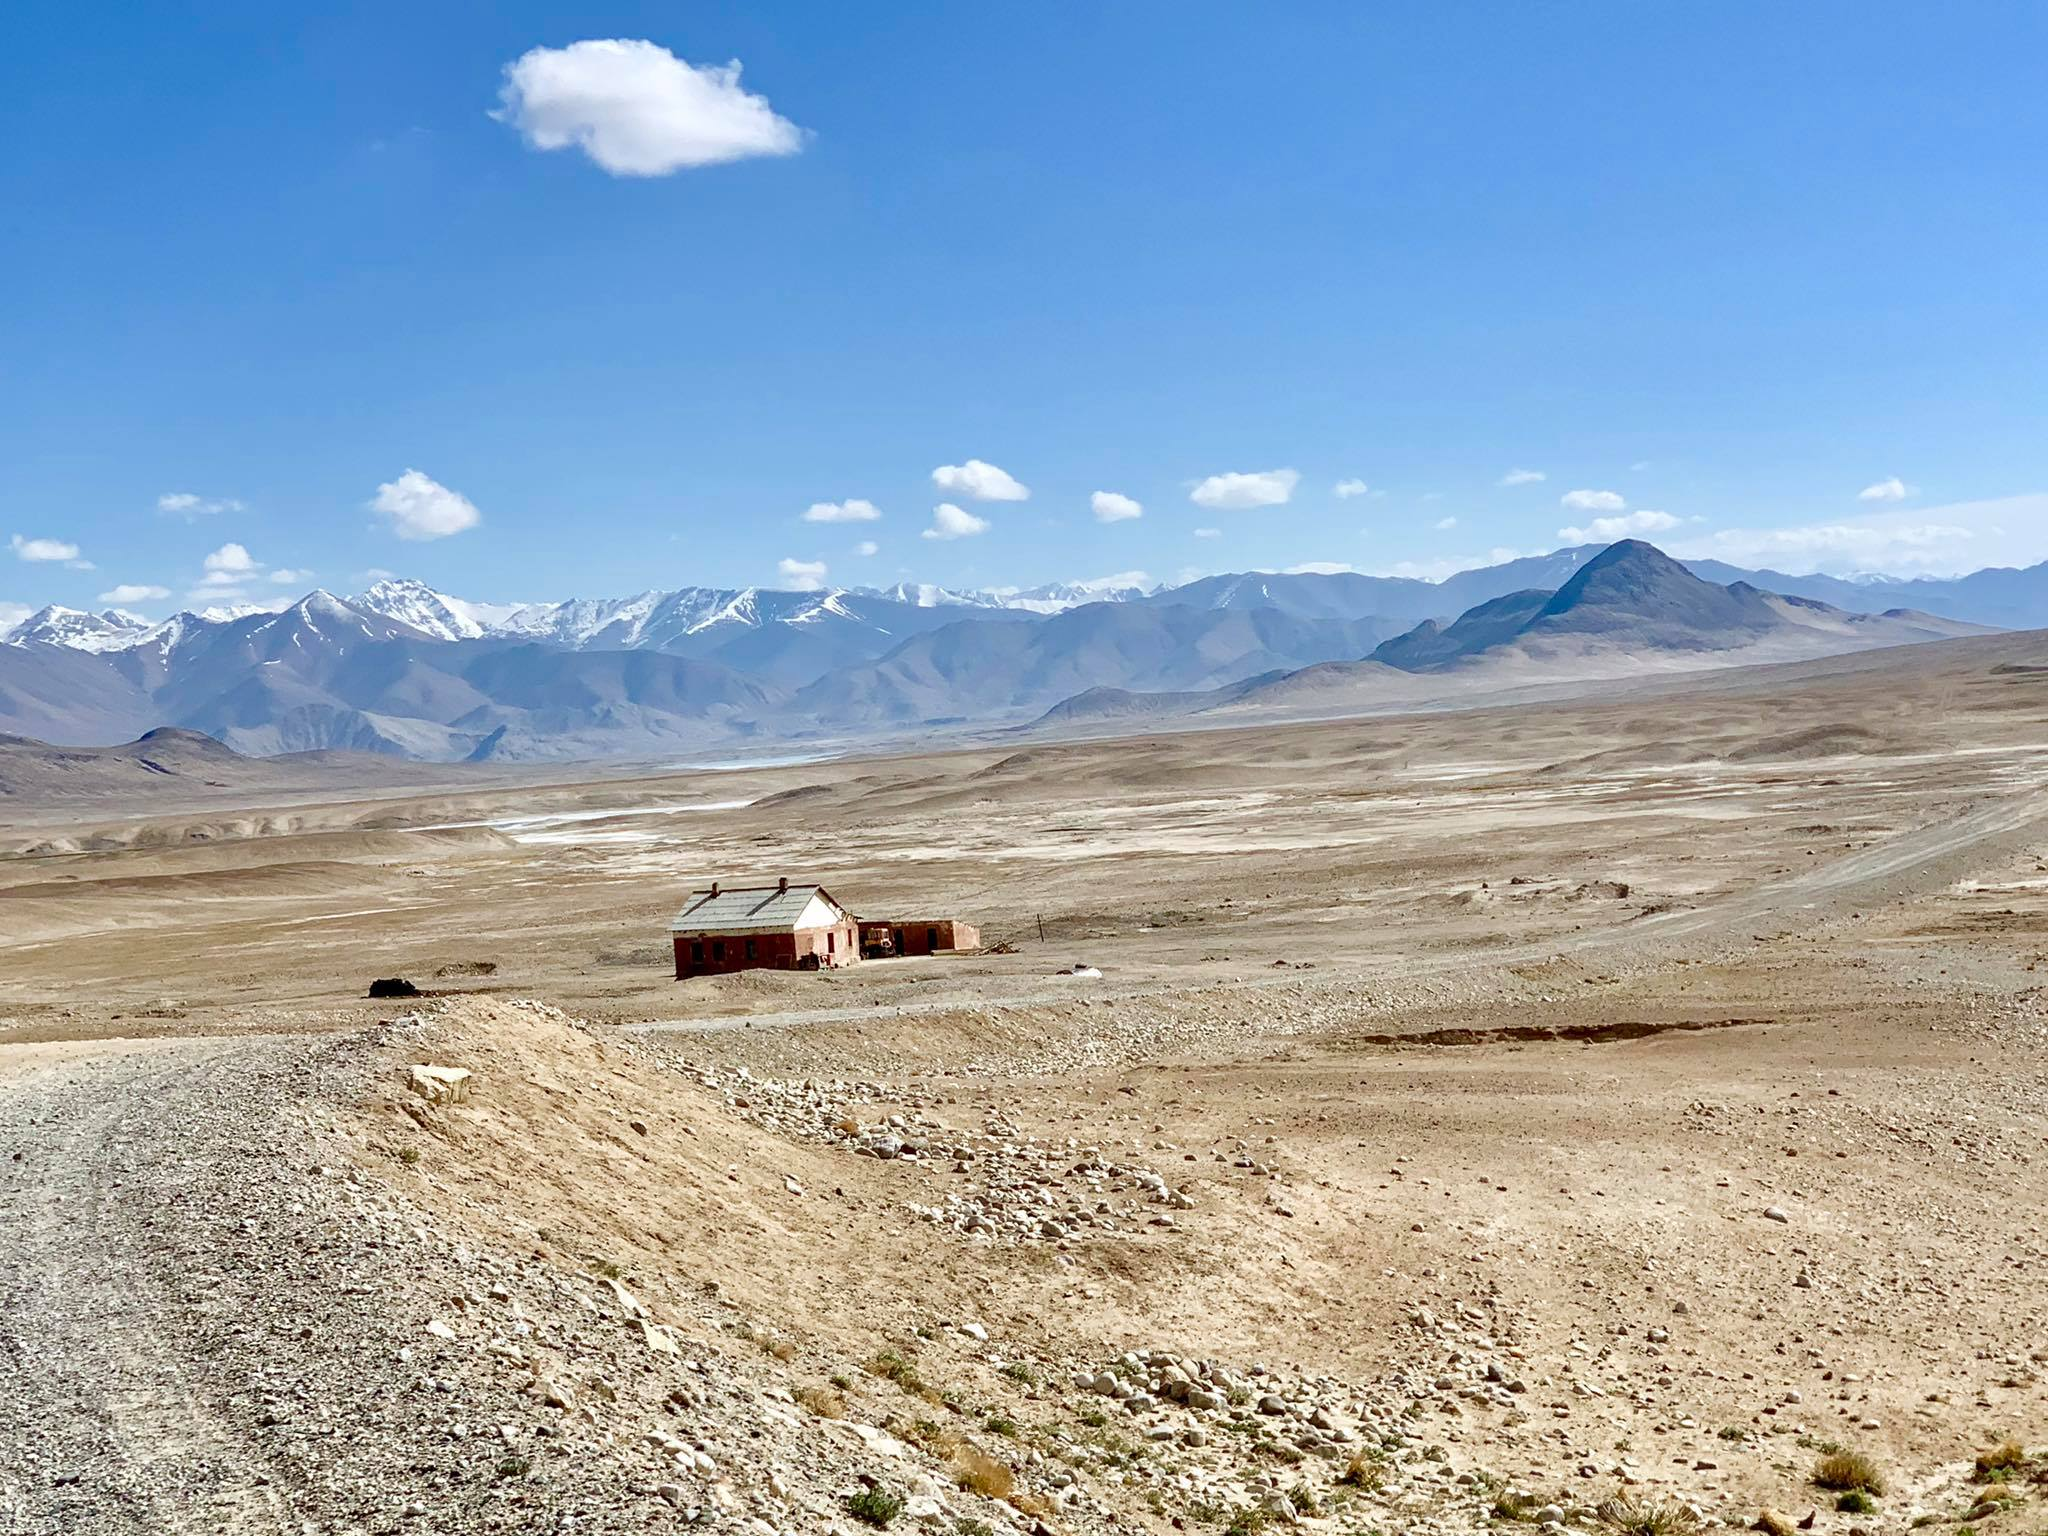 Kach Solo Travels in 2019 Our unexpected last stop during our Pamir Highway Roadtrip11.jpg